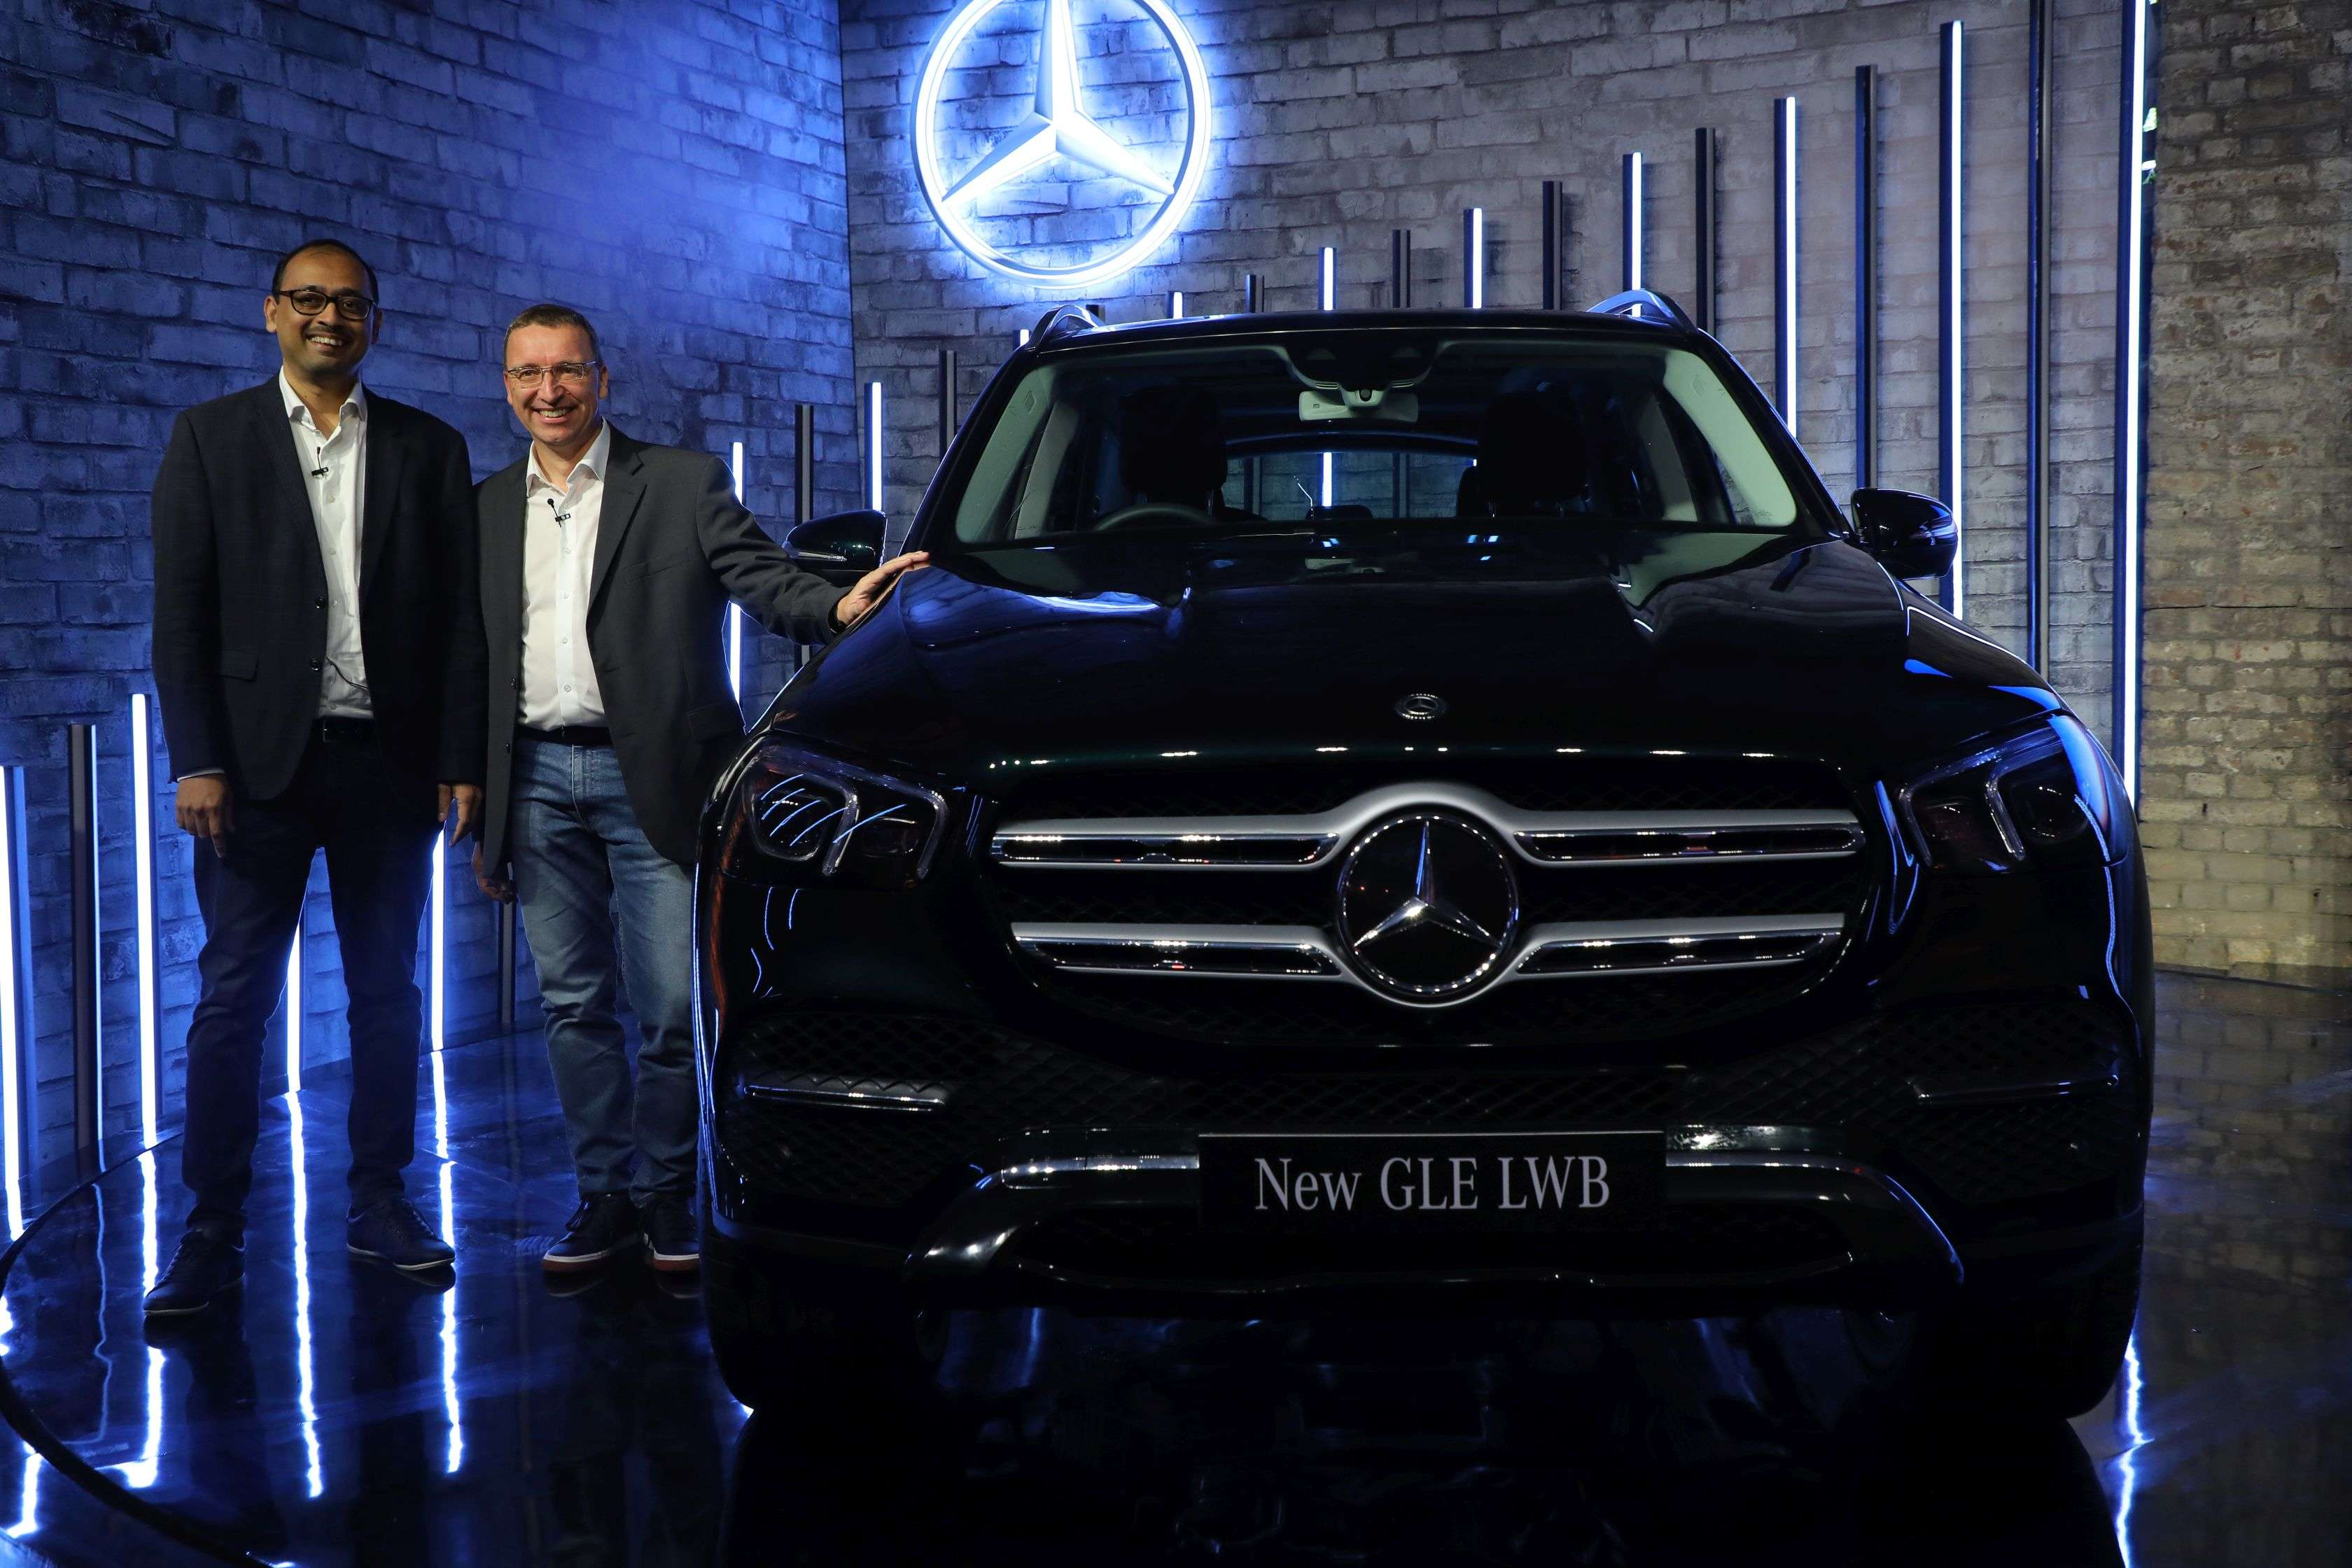 Mercedes Benz Mercedes Benz Expects Double Digit Growth In 2020 Auto News Et Auto